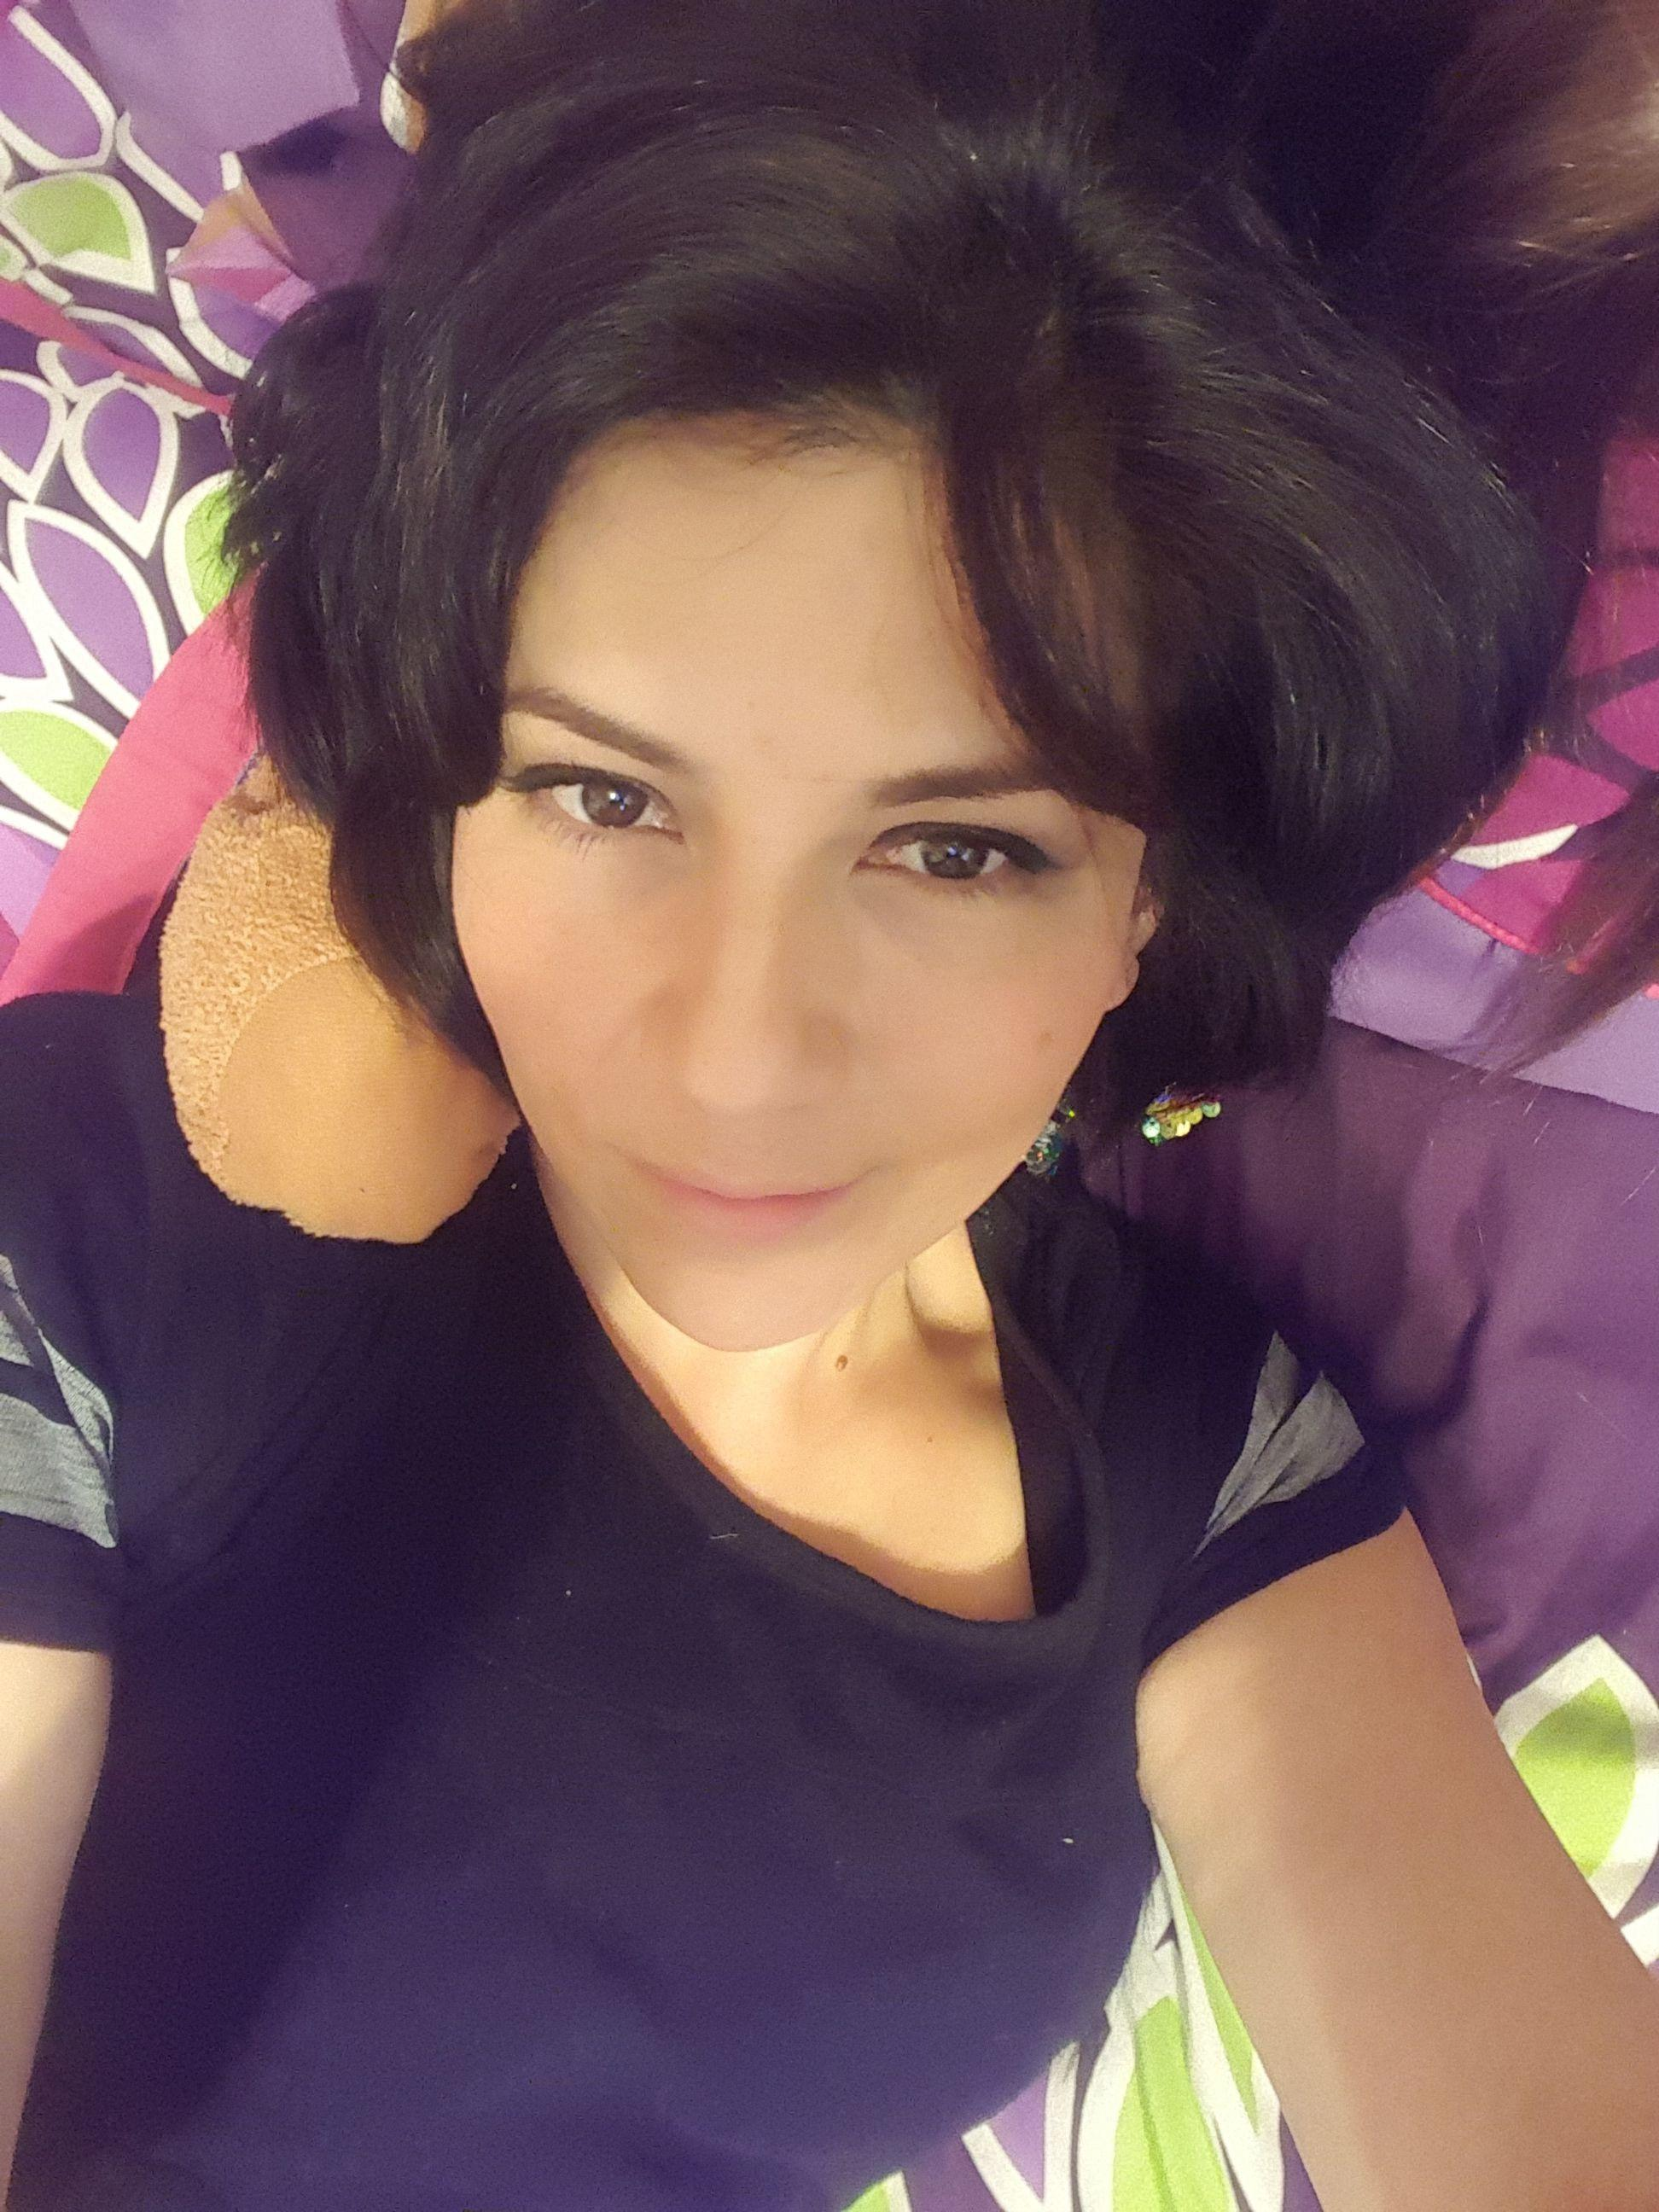 island single personals Rhode island singles, meet people for dating and chating: webdate is the worlds best dating and chat site for rhode island adults looking to date find singles in rhode island to meet online via our webcam services.